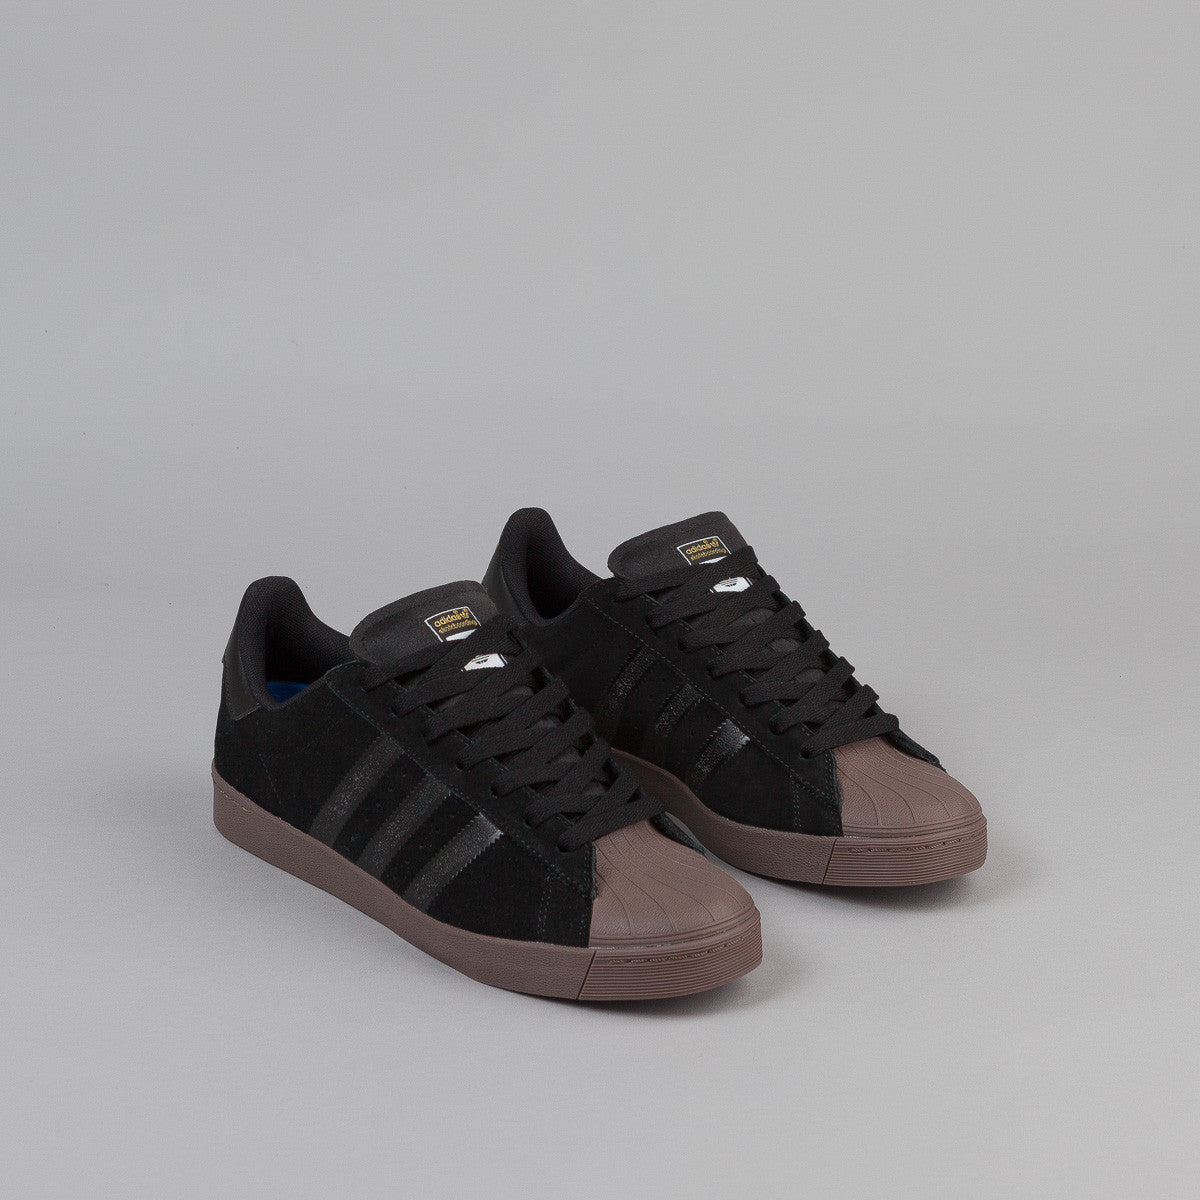 Kids Cheap Adidas superstar shoes Cheap Adidas eqt support adv black